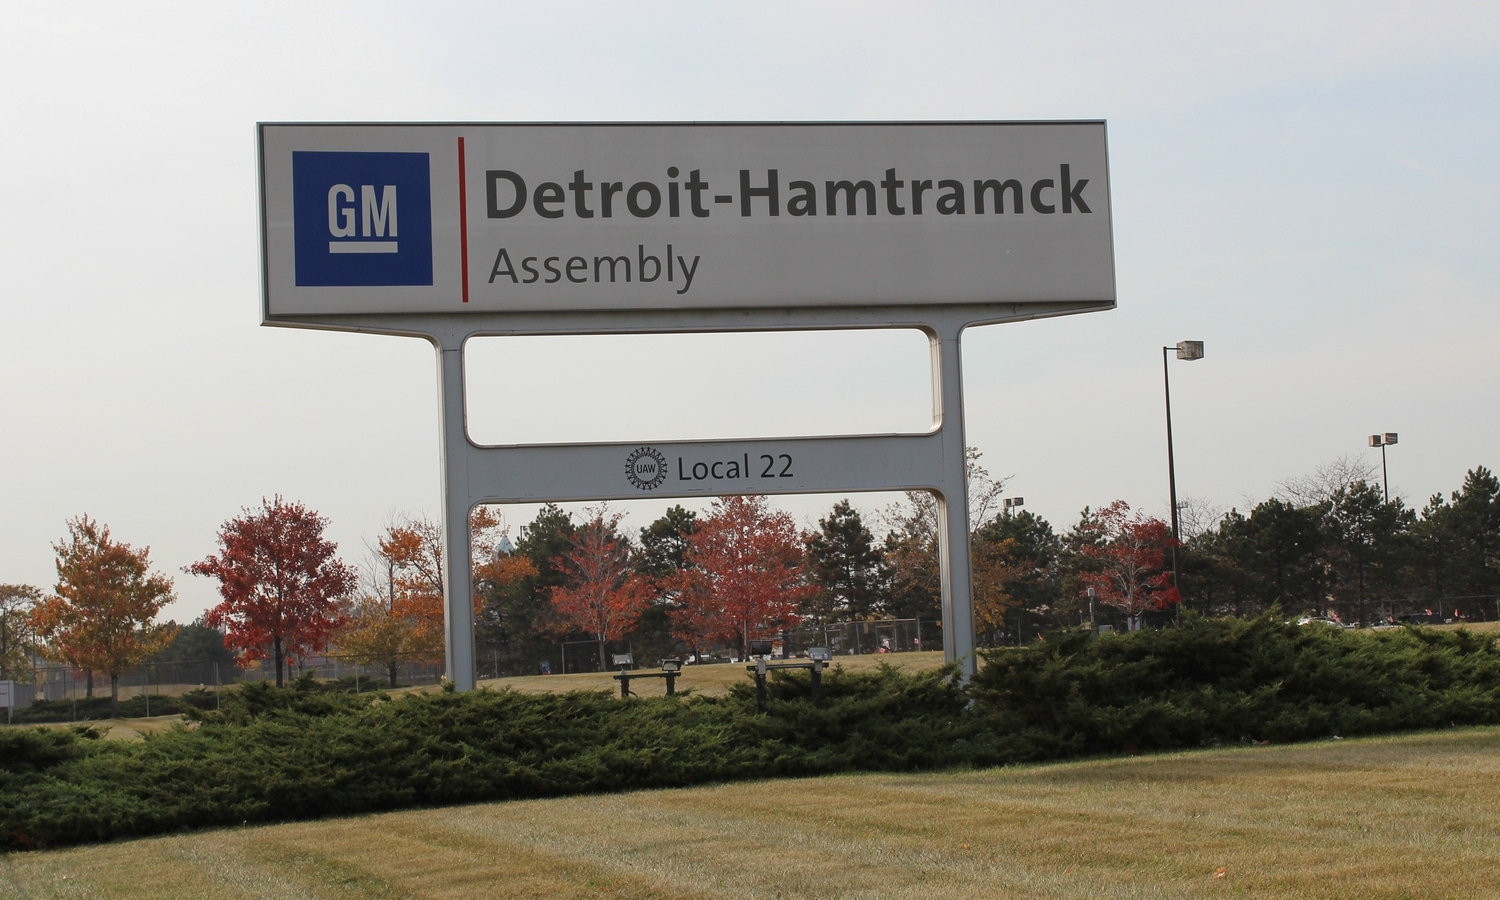 General Motors Detroit-Hamtramck Assembly Main